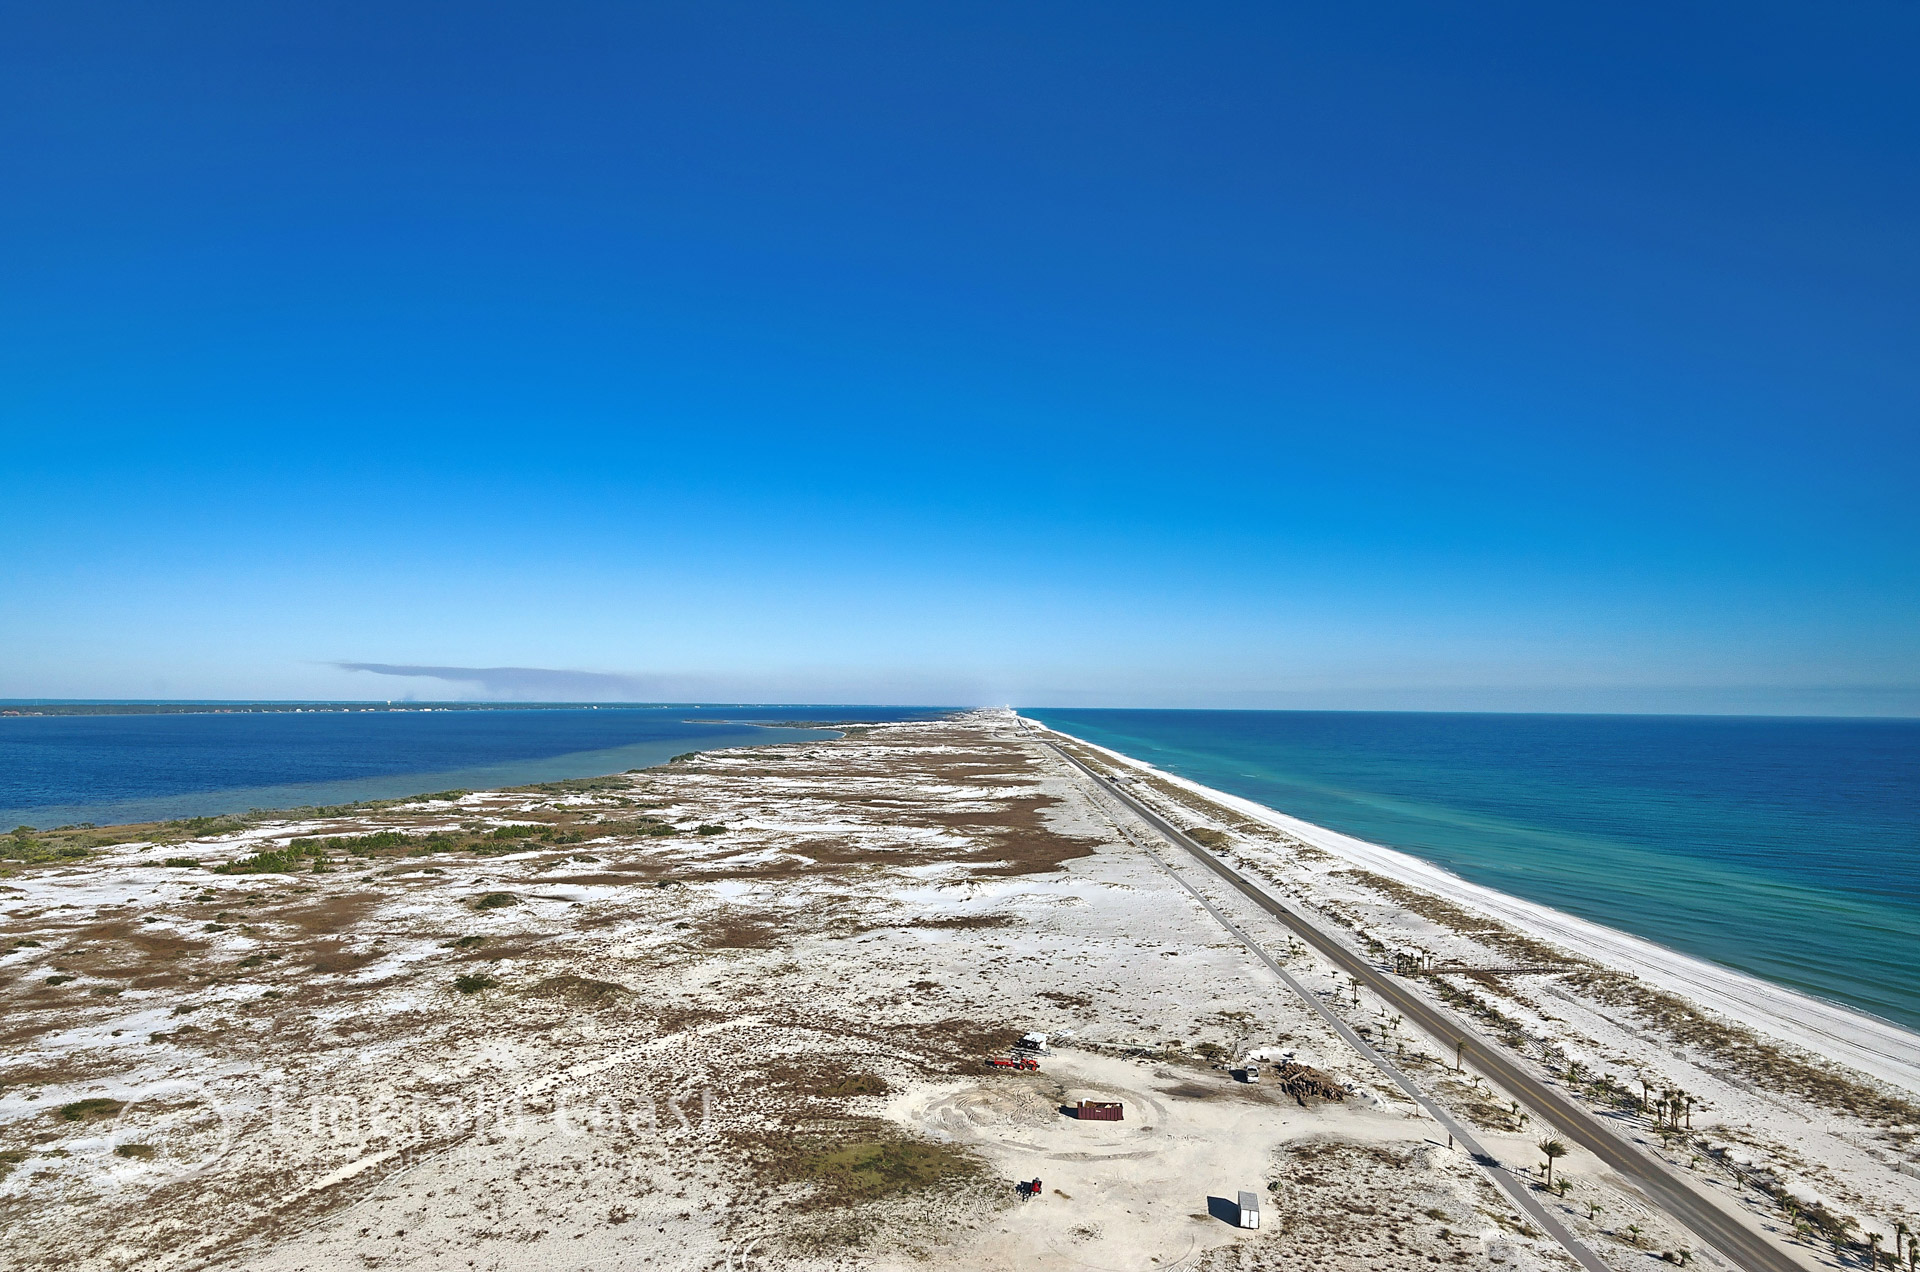 View of the National Seashore and Gulf of Mexico